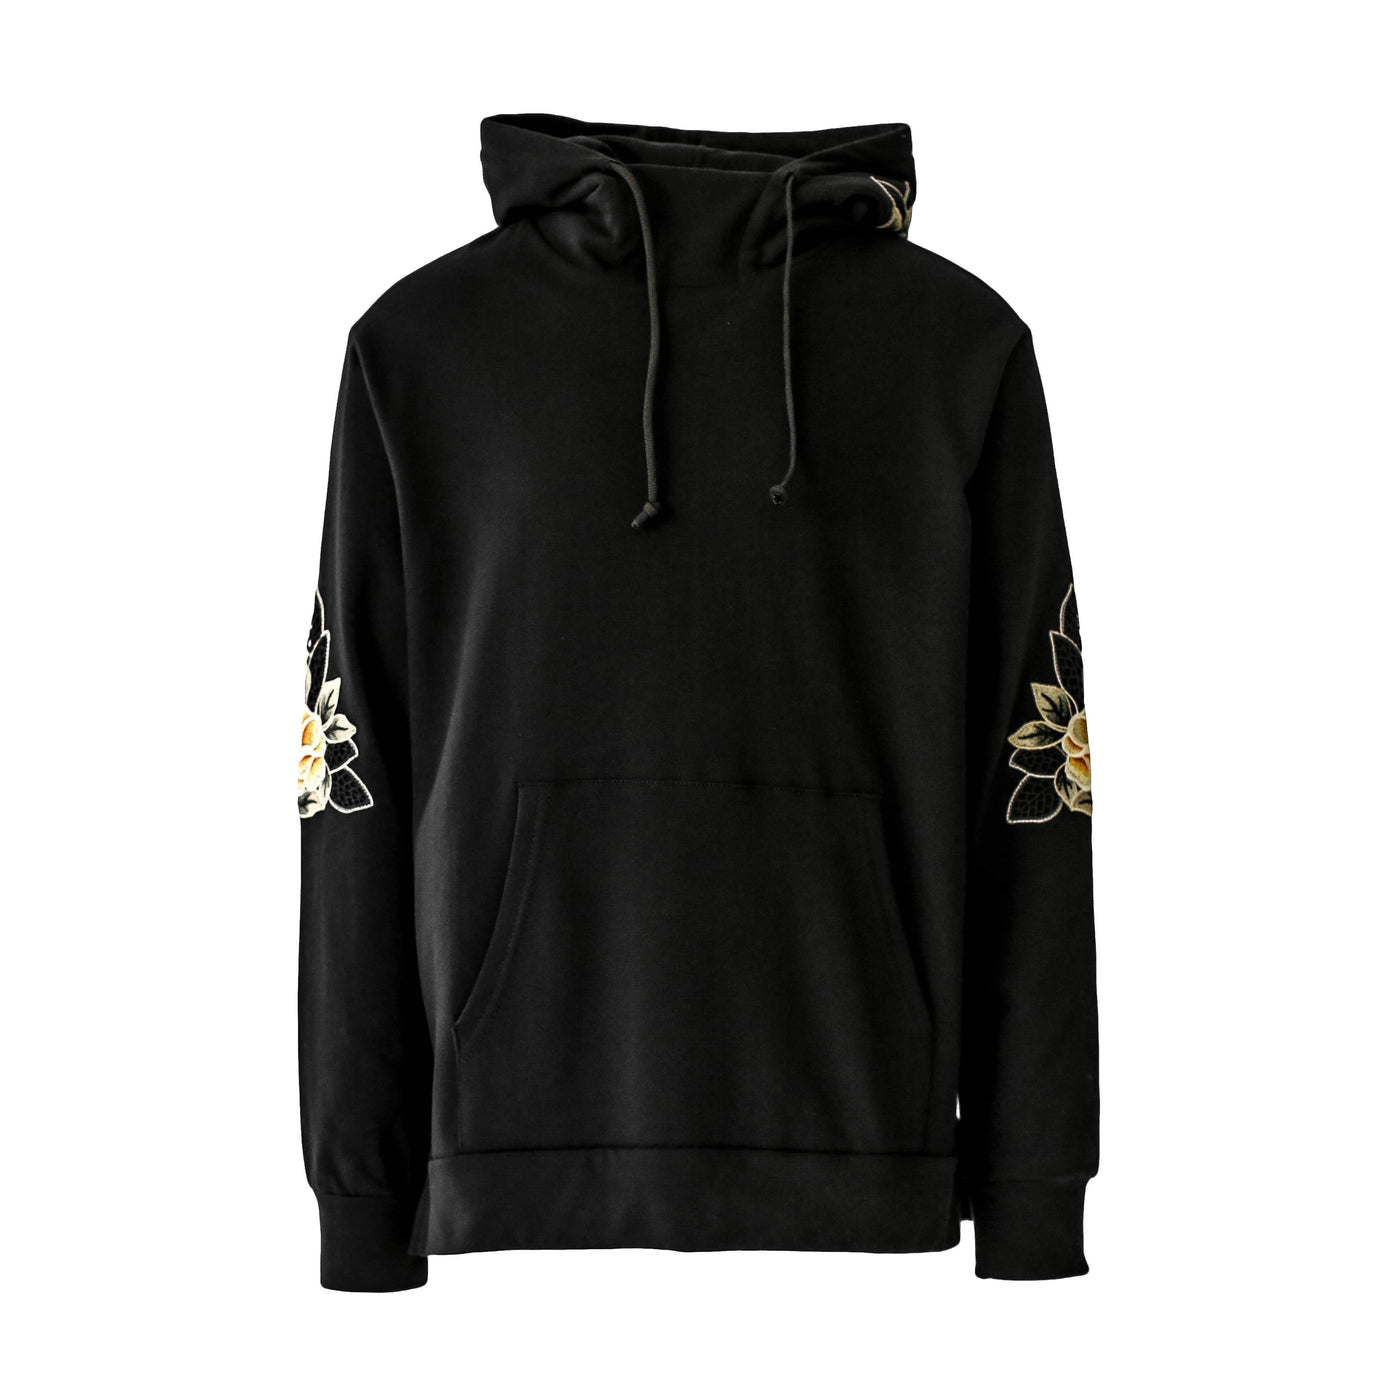 THE BLACK FLORAL LUXE HOODIE